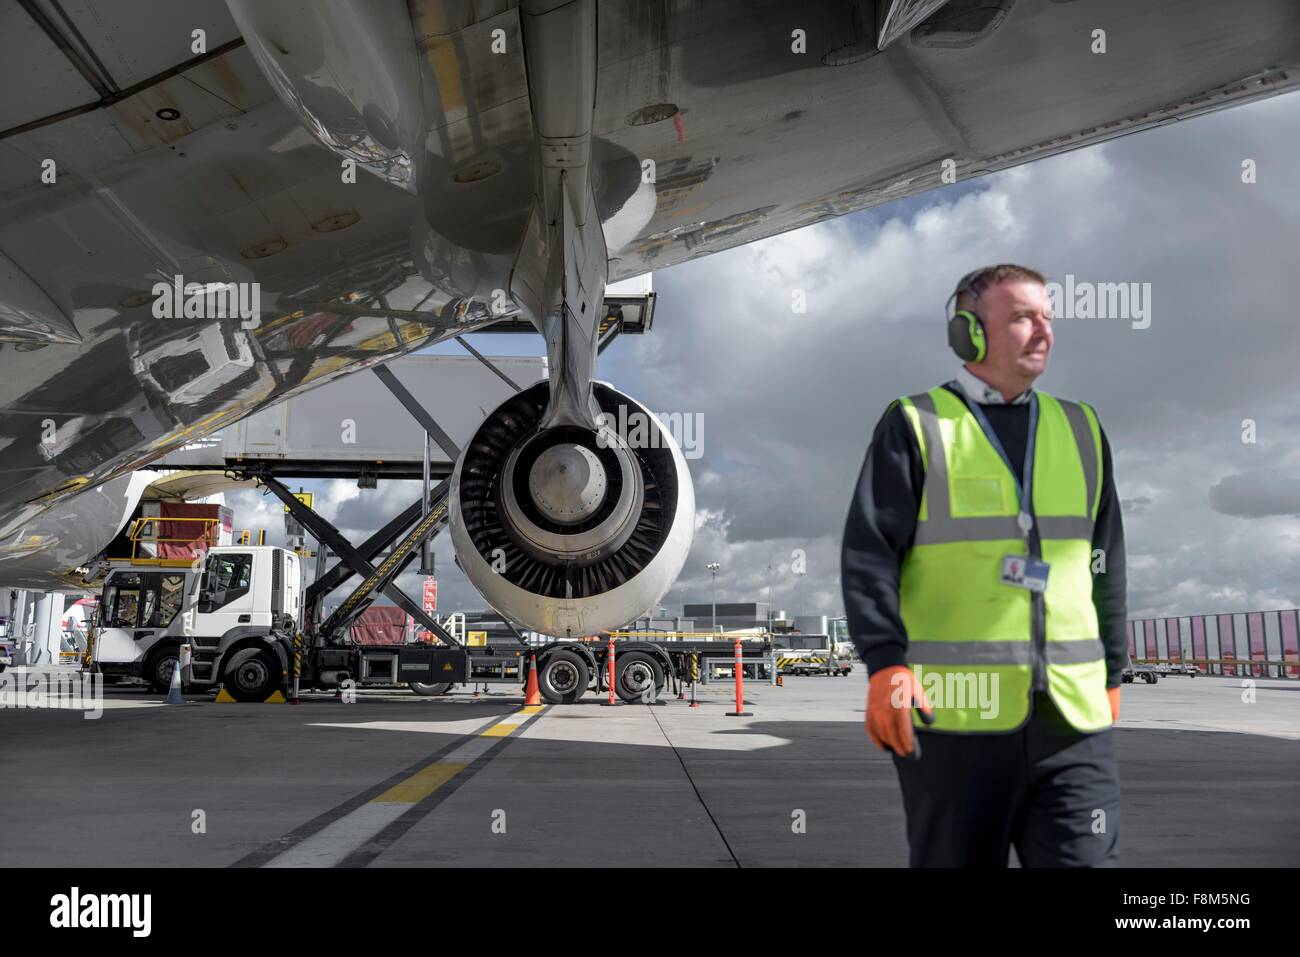 Ground crew engineer with A380 jet aircraft - Stock Image